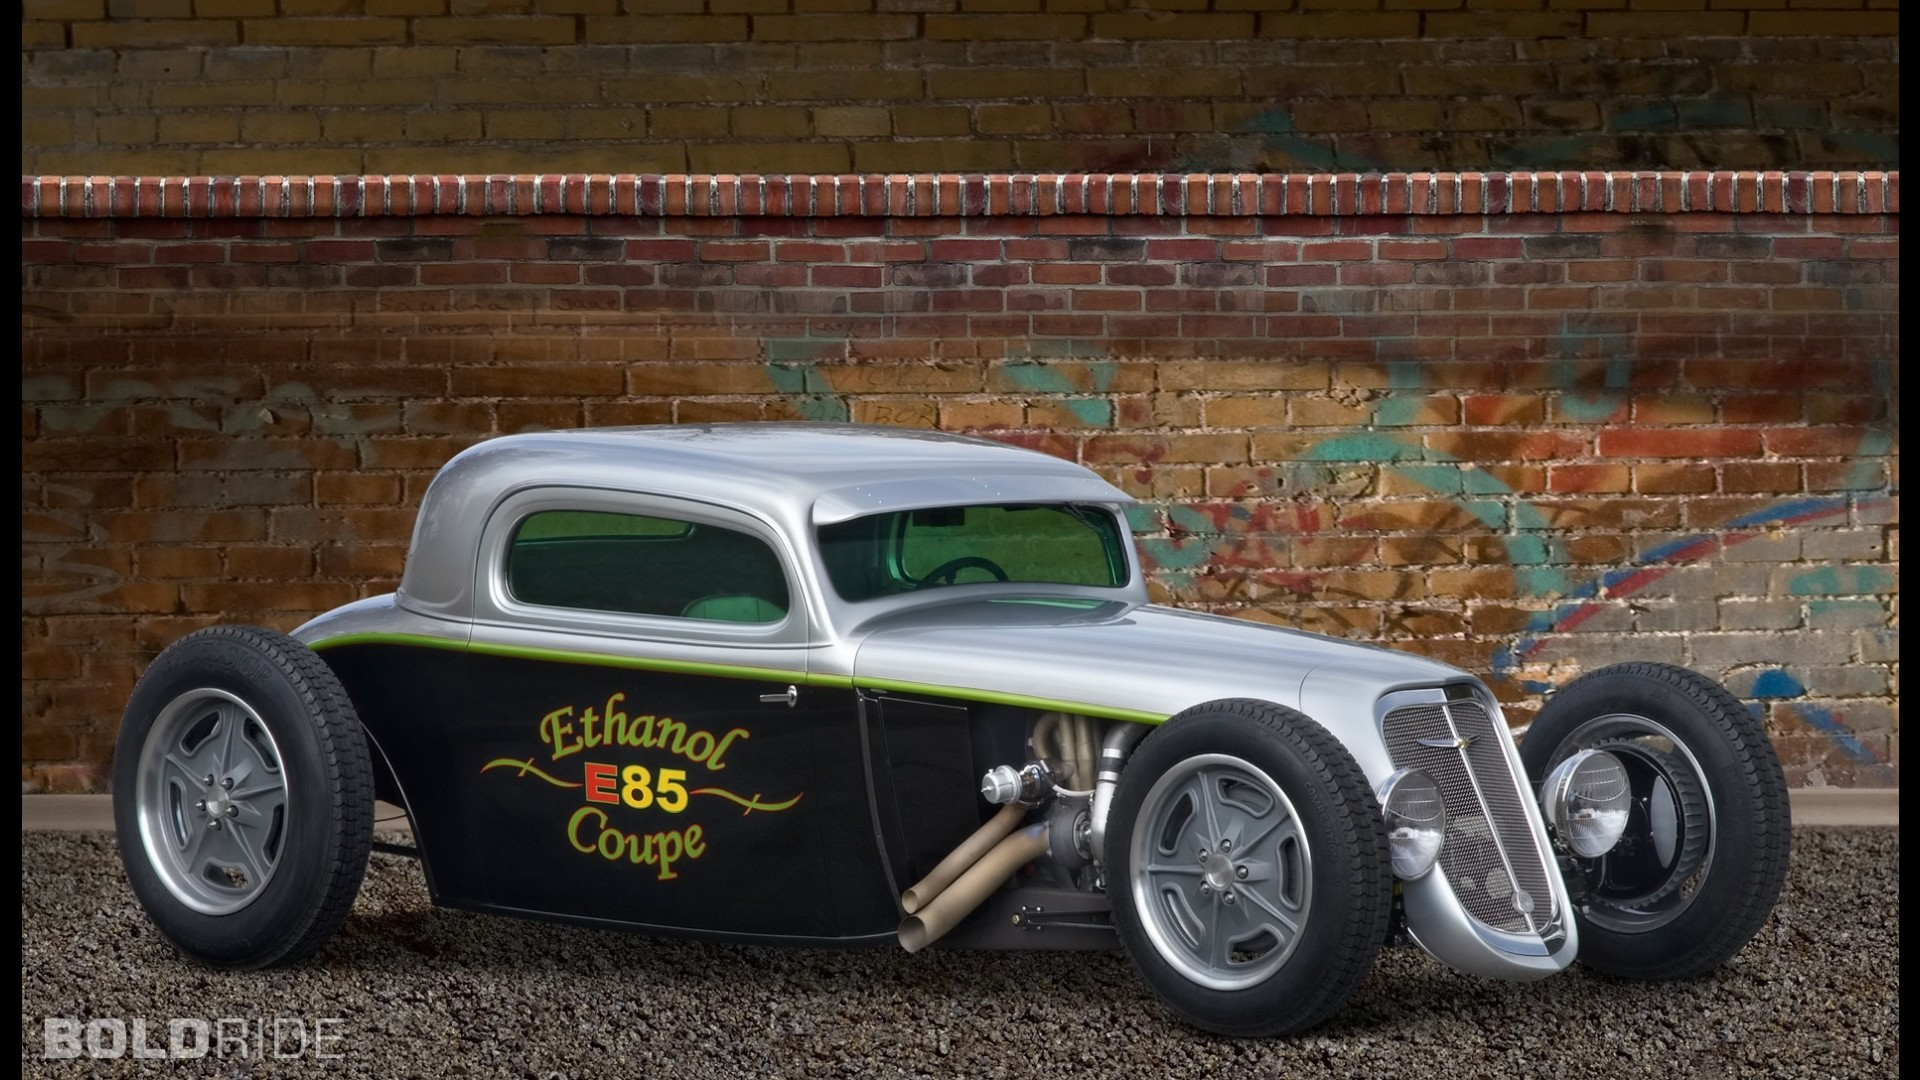 Chevrolet Coupe E85